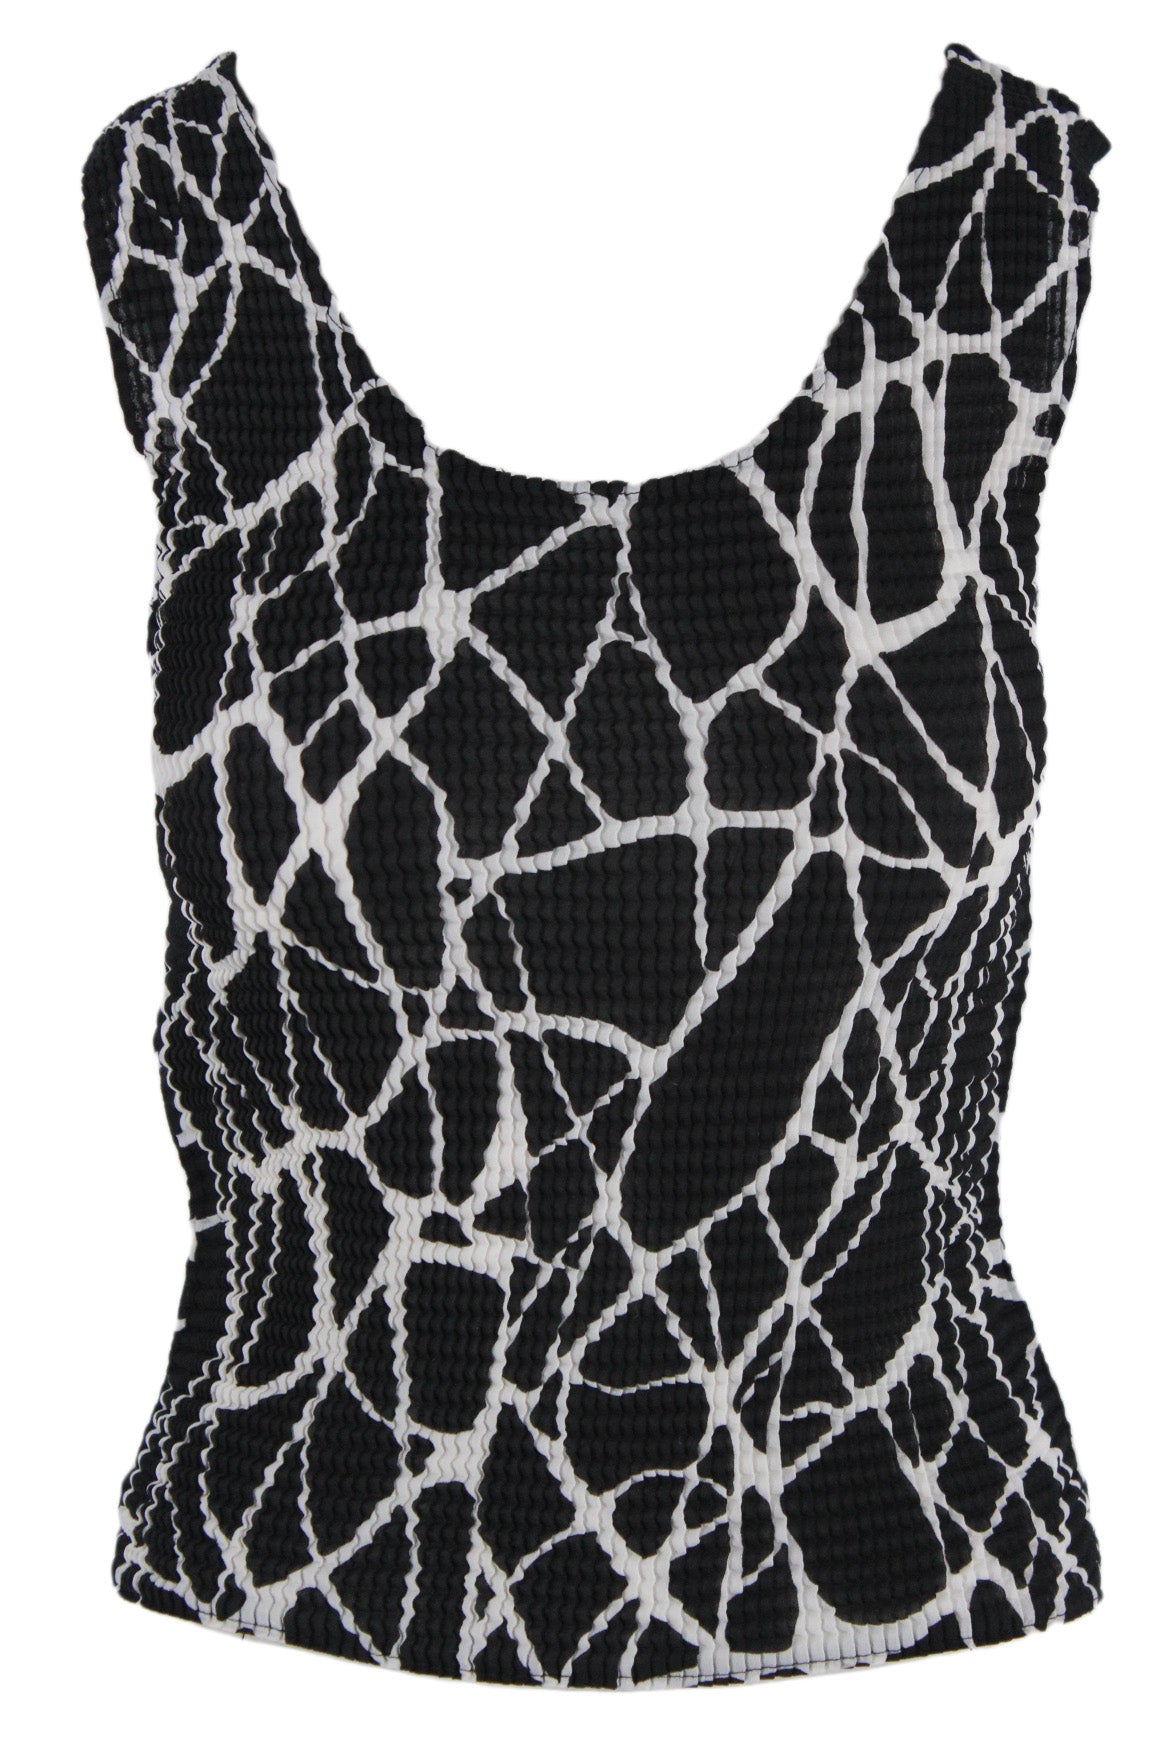 vintage black sleeve-less top. features white contrast details, and a conceptual crinkle like design.